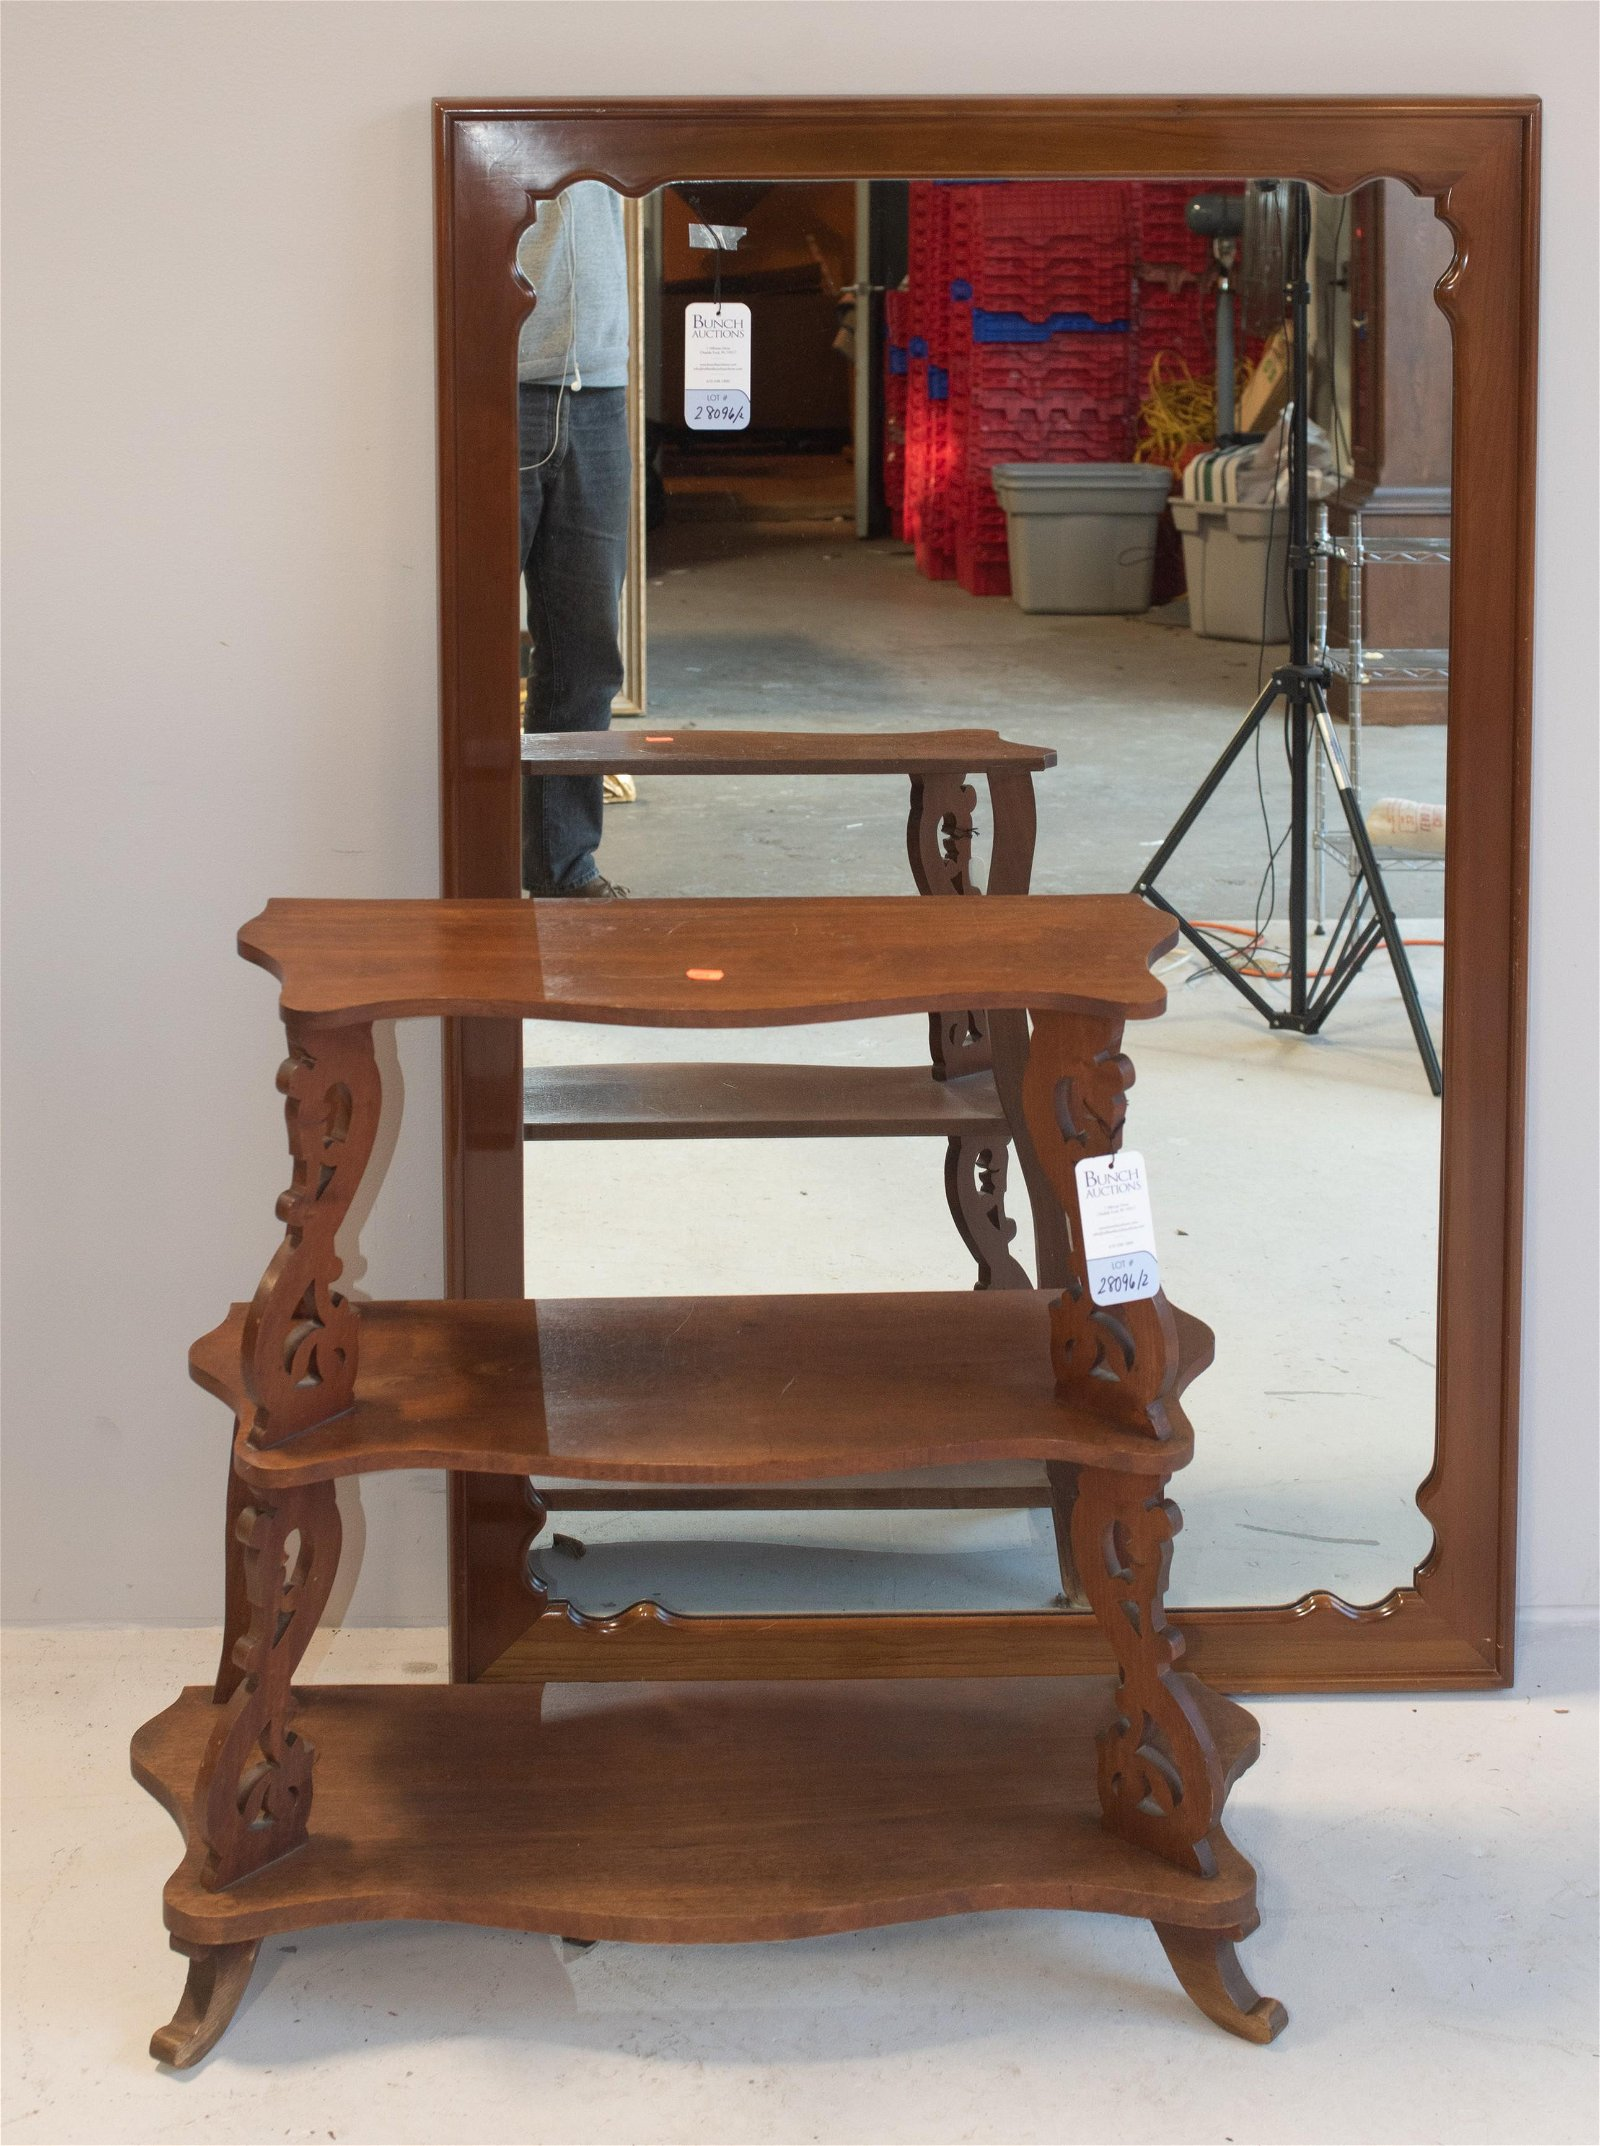 Victorian carved 3-tier shelf, hanging wall mirror